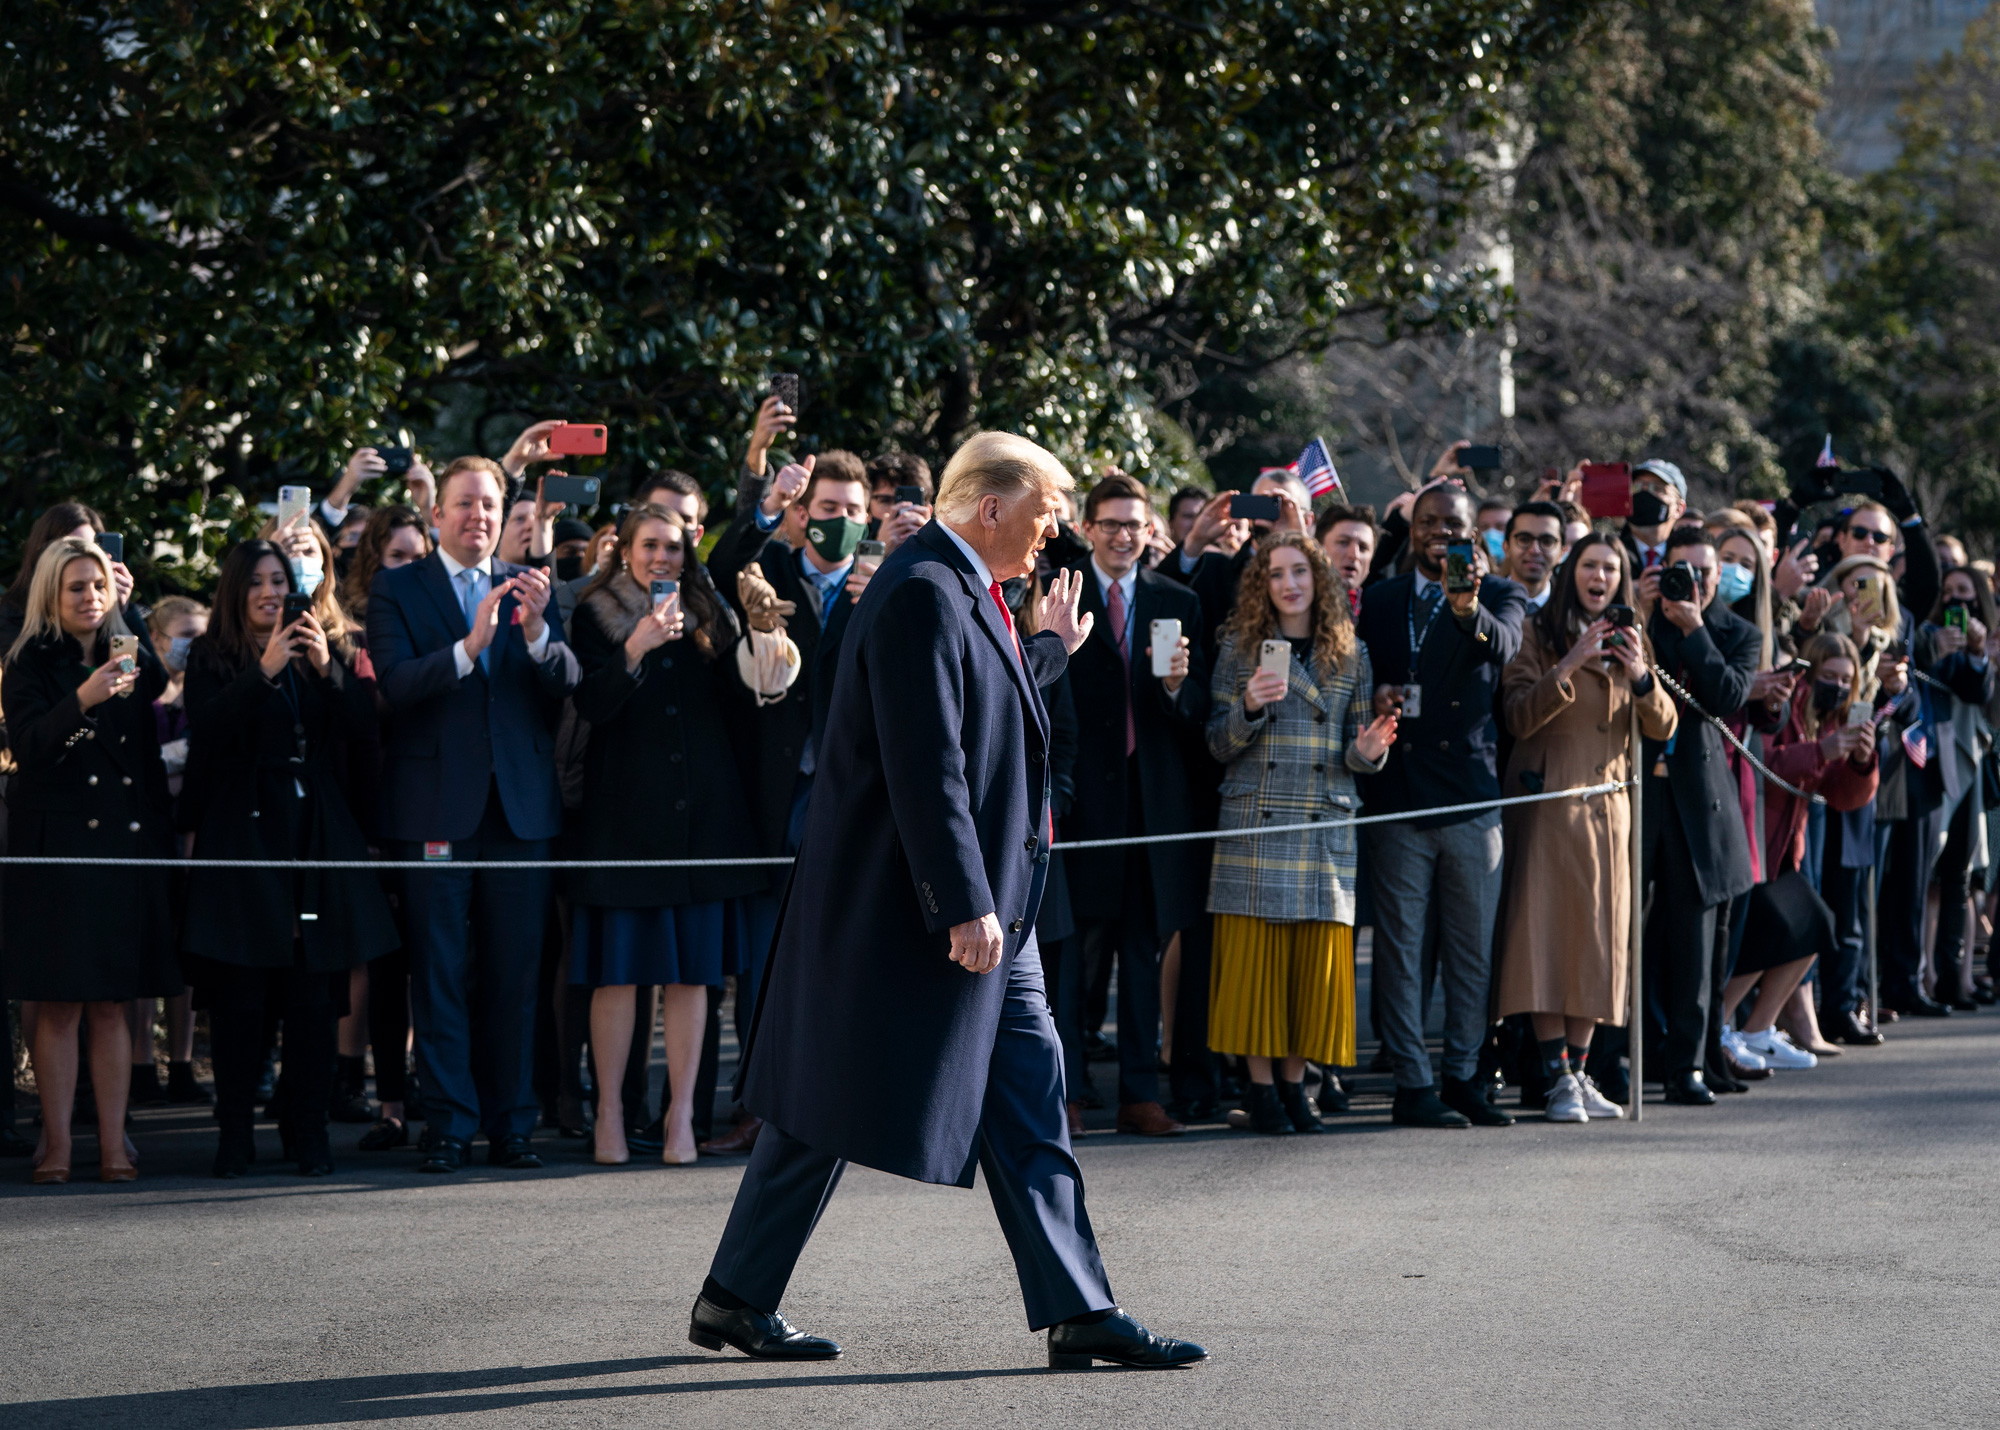 President Trump visits the White House for the border